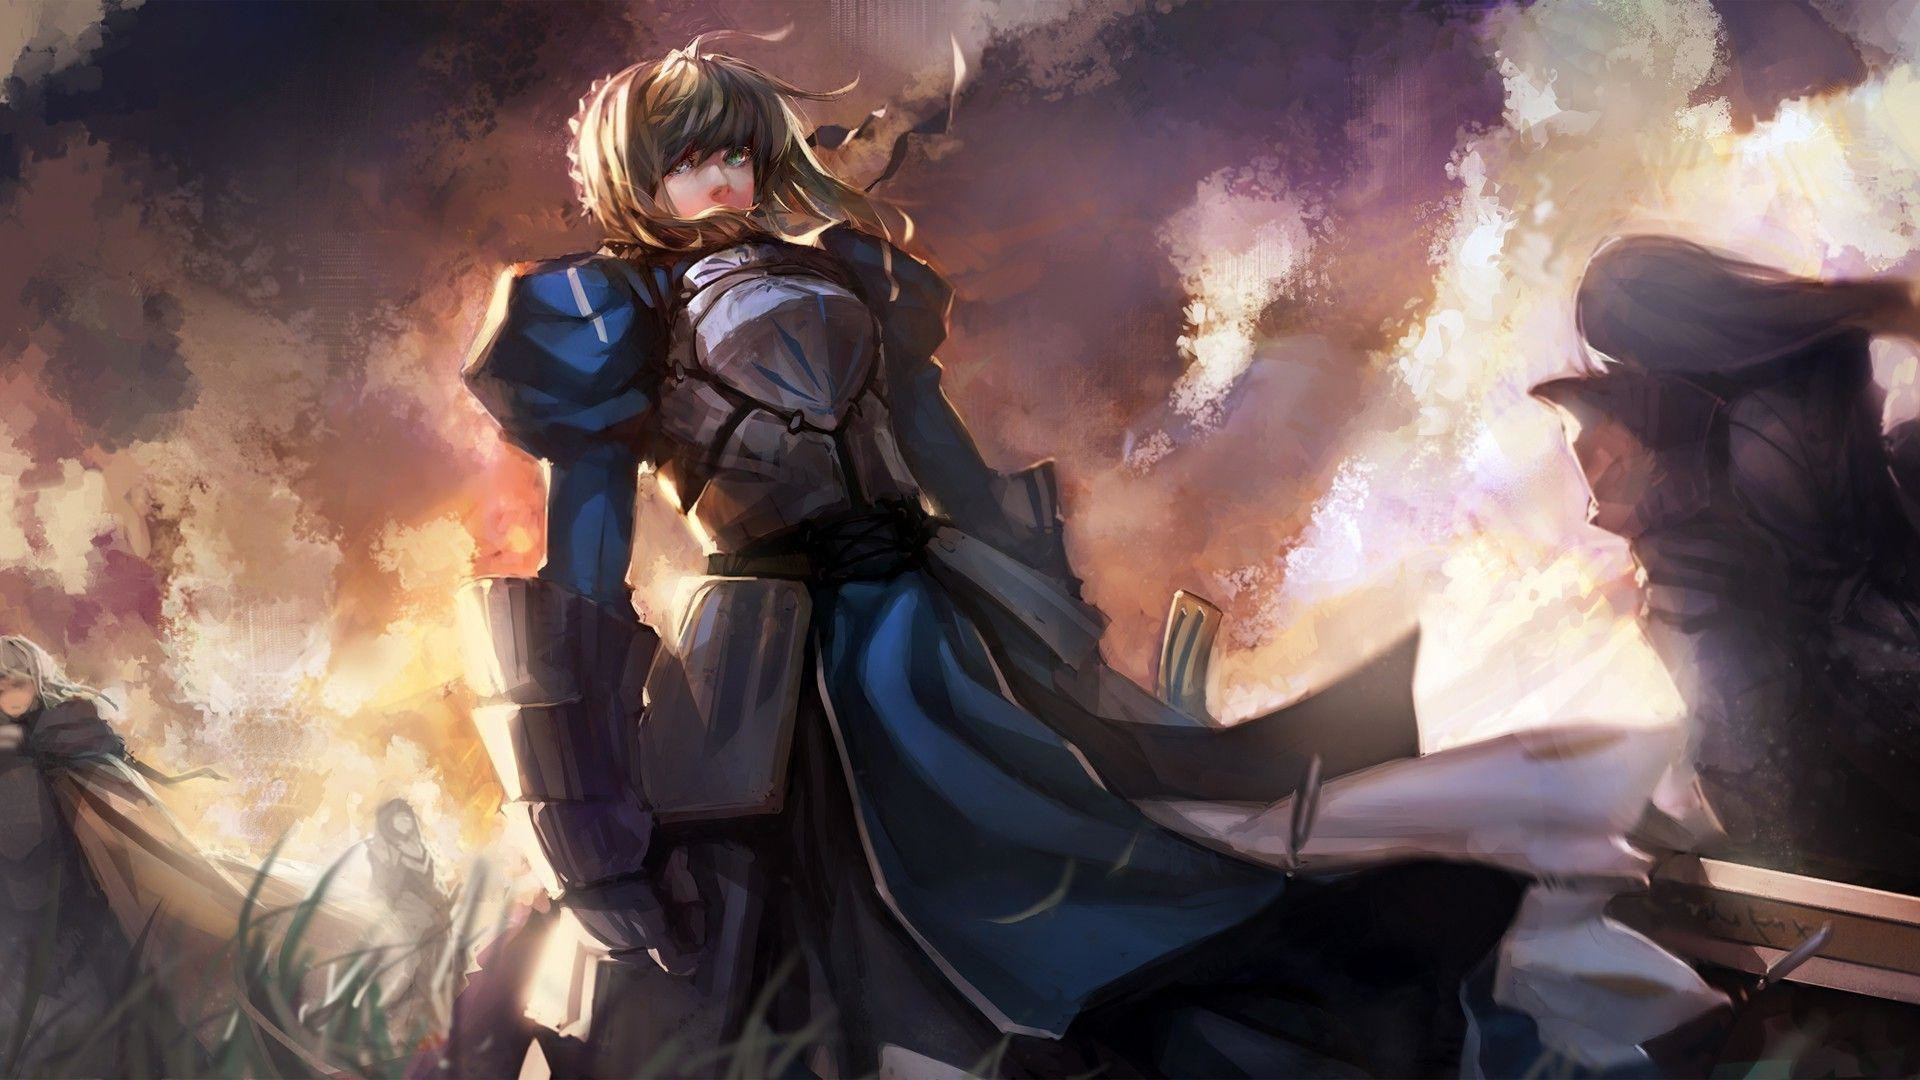 75 Fate Stay Night Wallpaper Hd